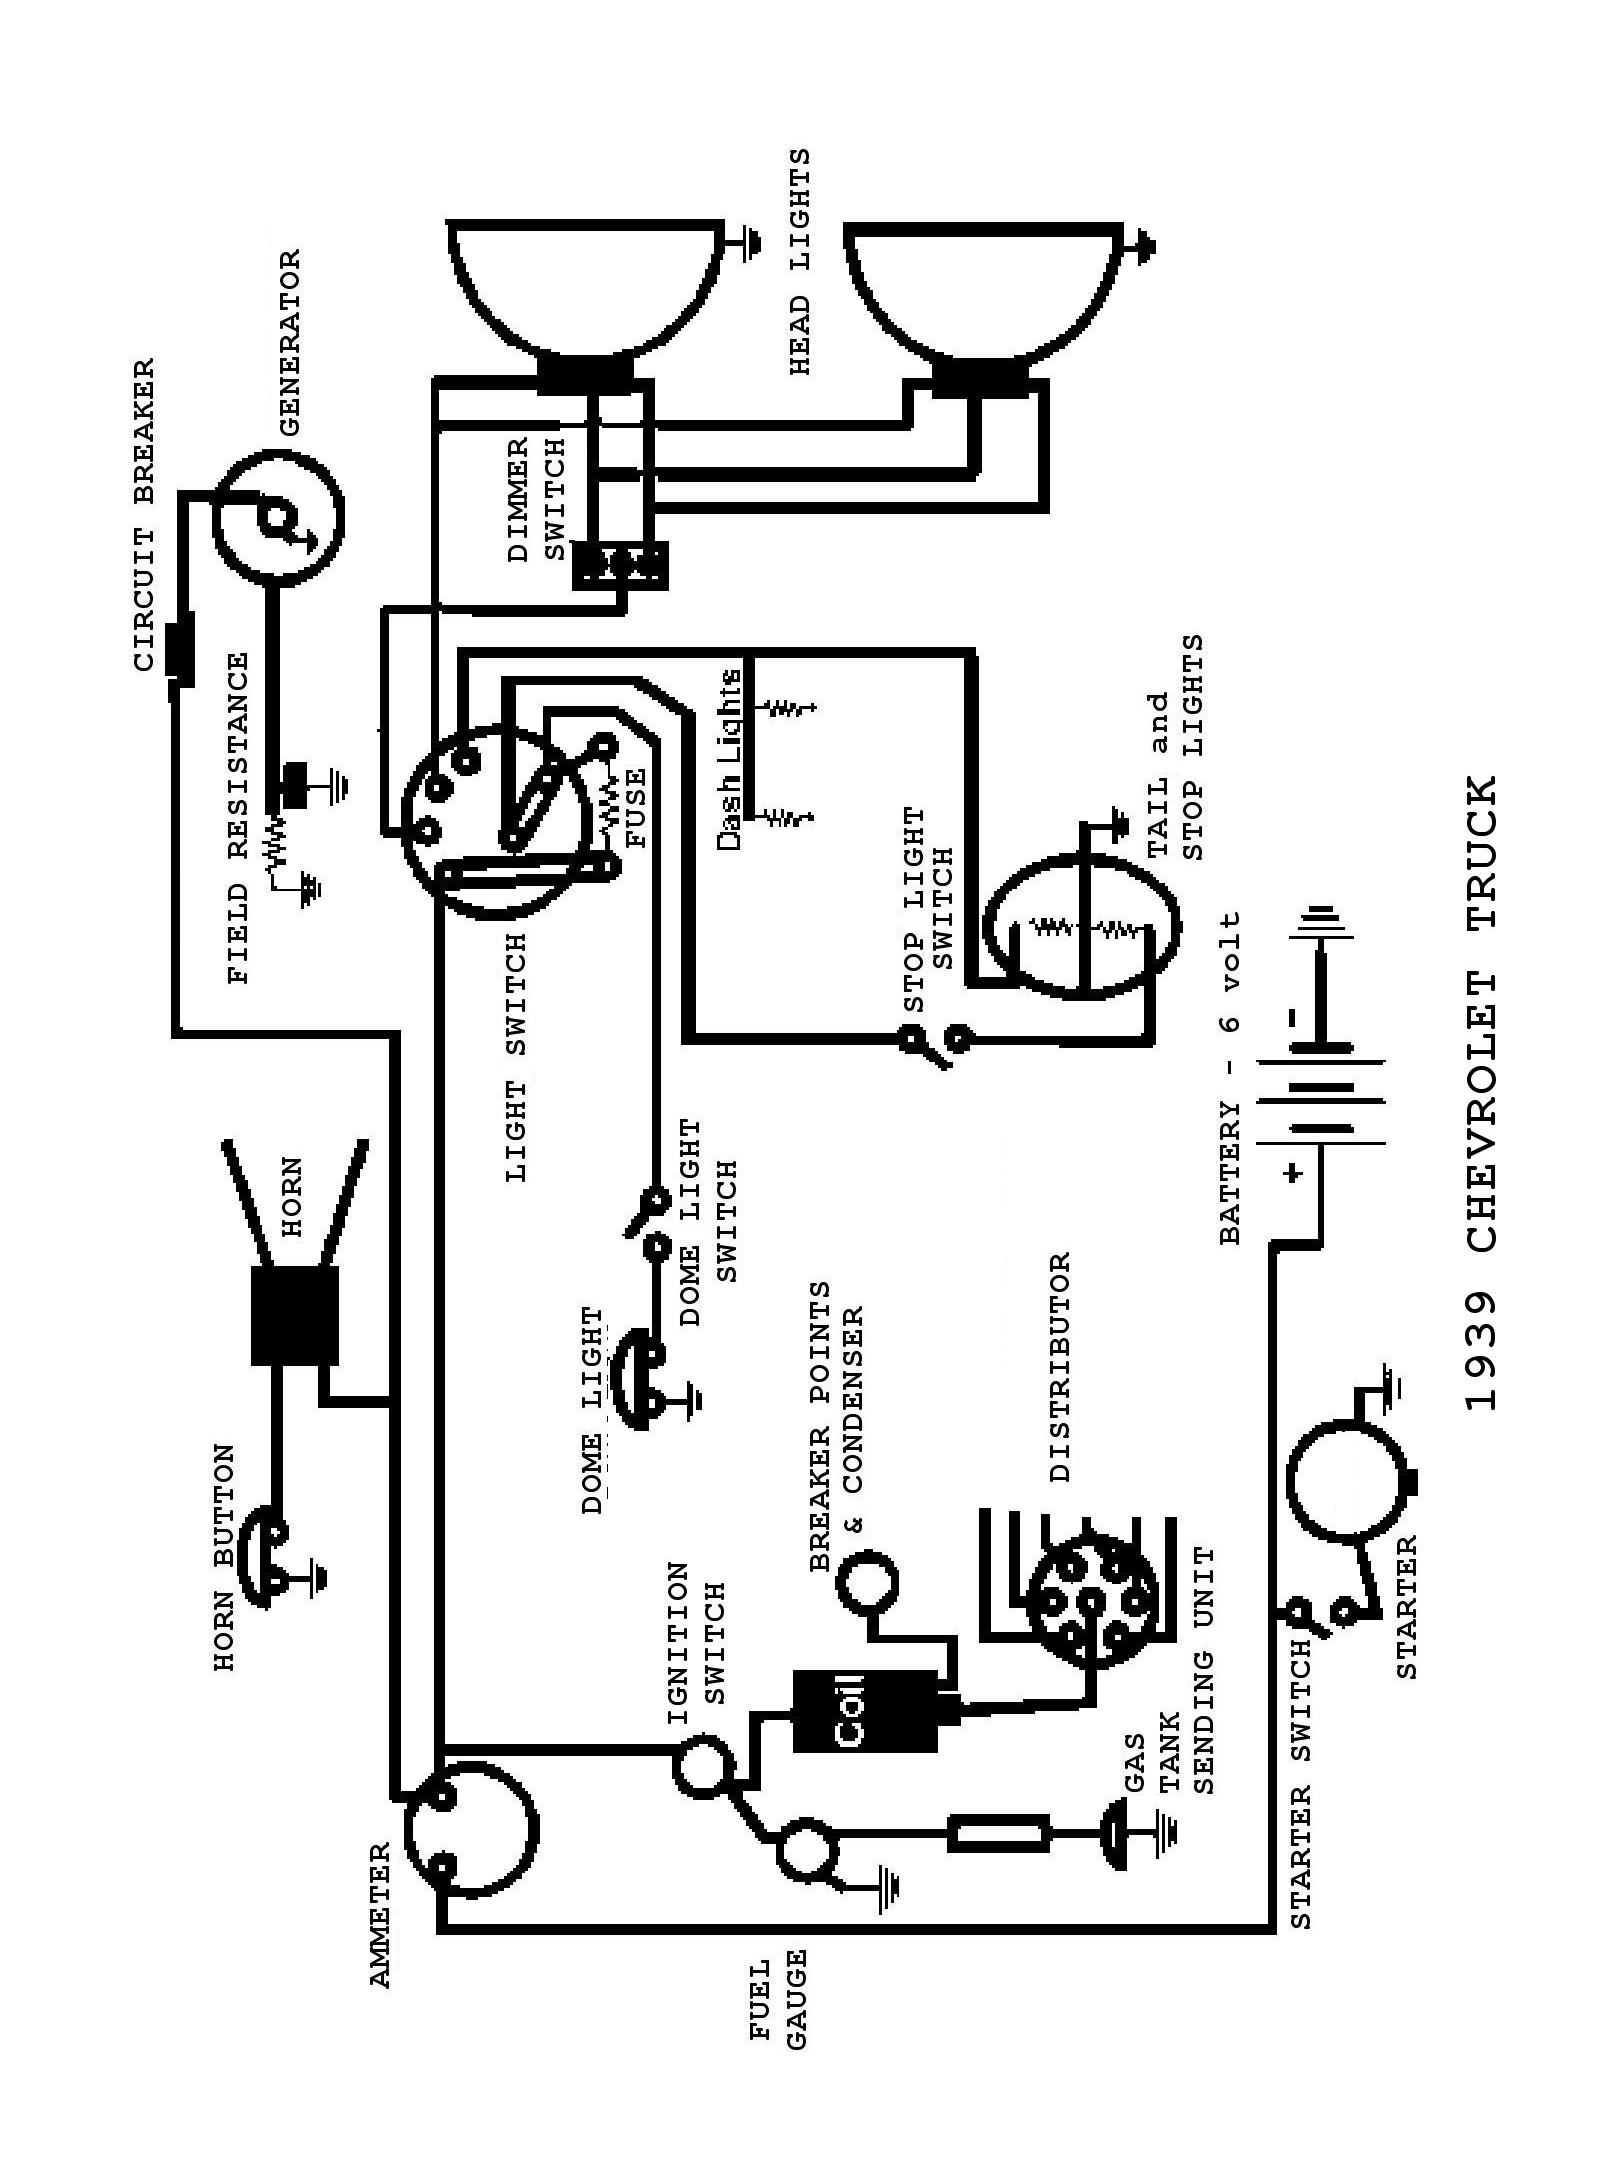 39truck chevy wiring diagrams 6 volt coil wiring diagram at soozxer.org